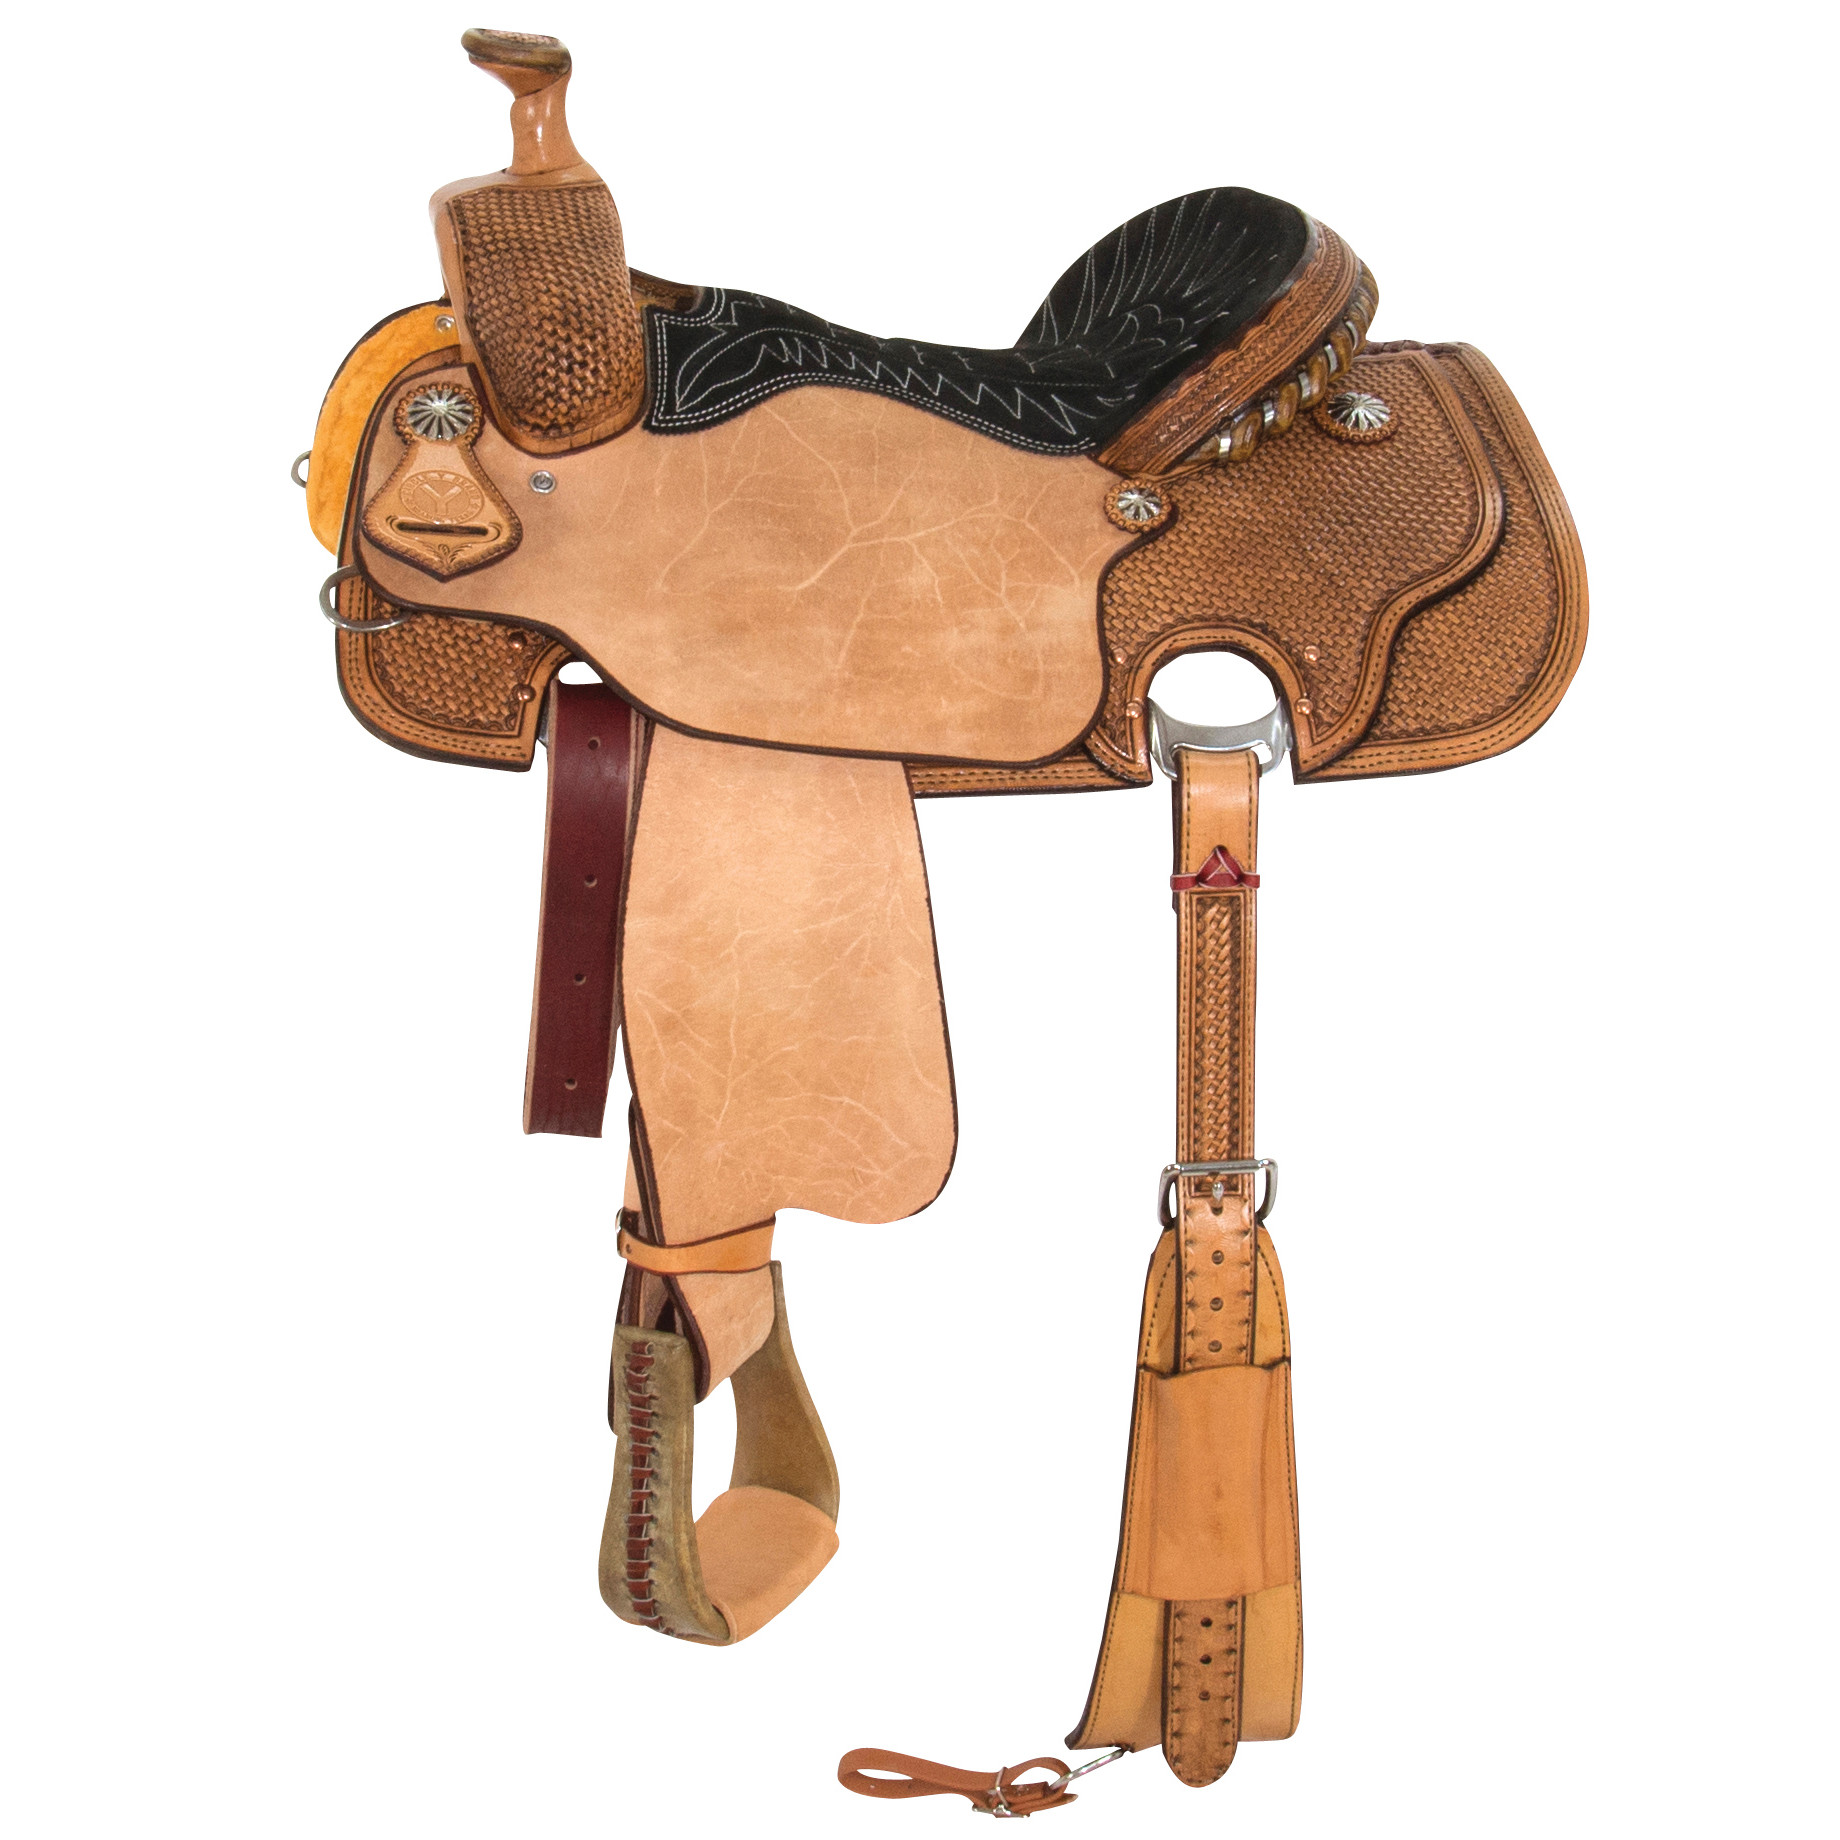 Circle Y - In 1960, Circle Y began manufacturing quality saddles and tack in the small town of Yoakum, Texas. A lot has changed in 54 years, but what hasn't is the pride, craftsmanship, and quality built into each Circle Y saddle and the commitment to make it even better tomorrow.